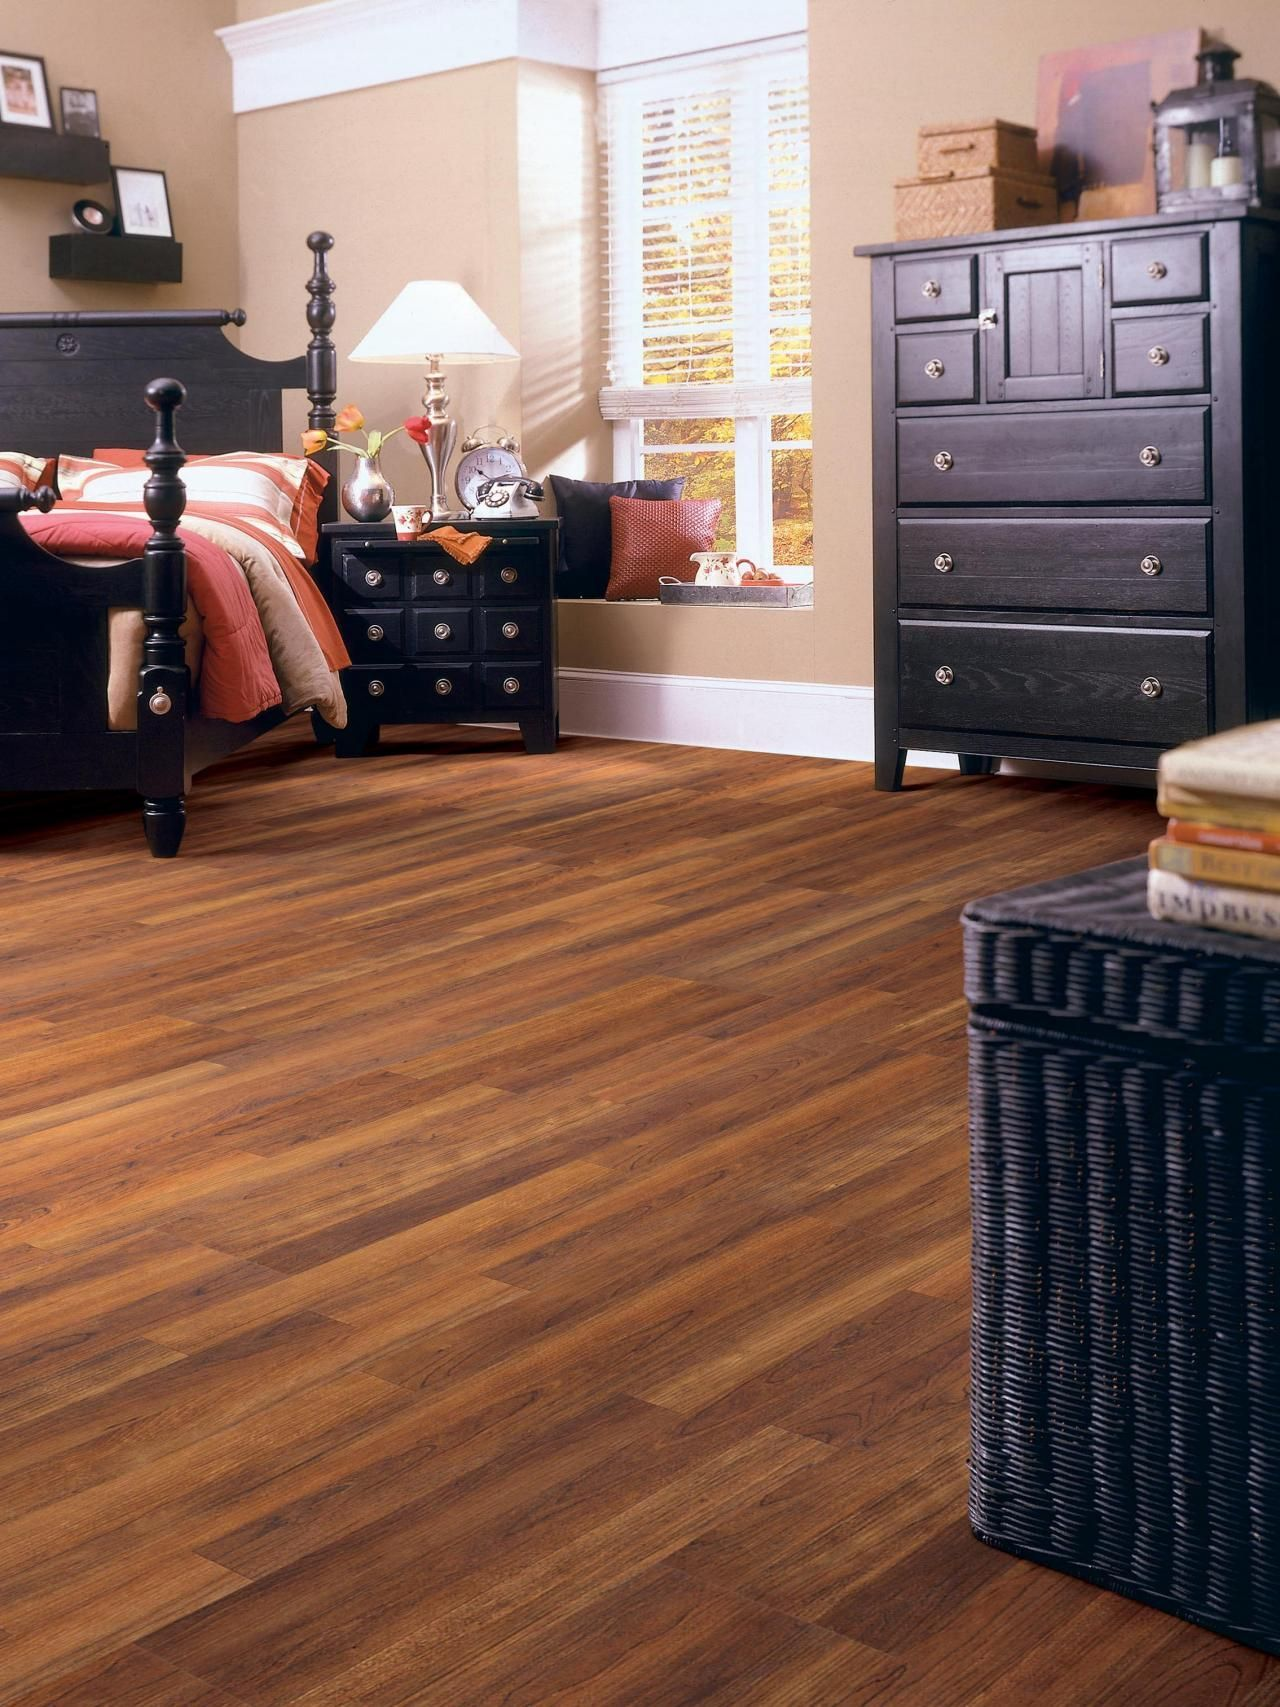 The Waterproof Laminated Flooring That Can Turn Your House